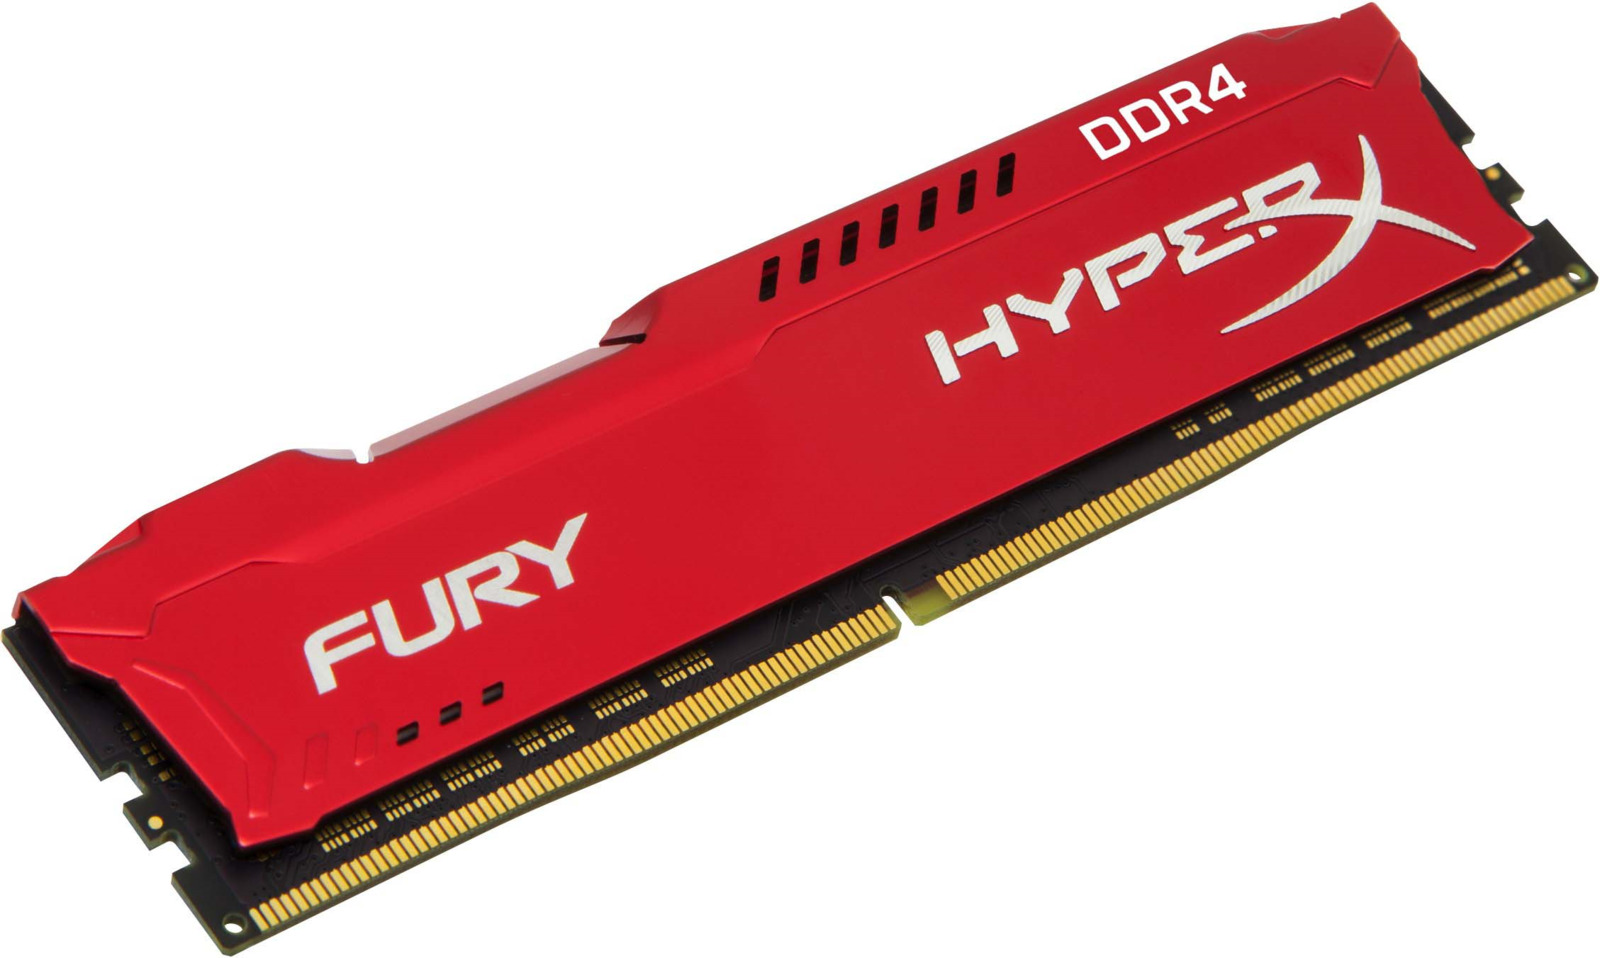 Модуль оперативной памяти Kingston HyperX Fury DDR4 DIMM, 16GB, 3466MHz, CL19, HX434C19FR/16, red